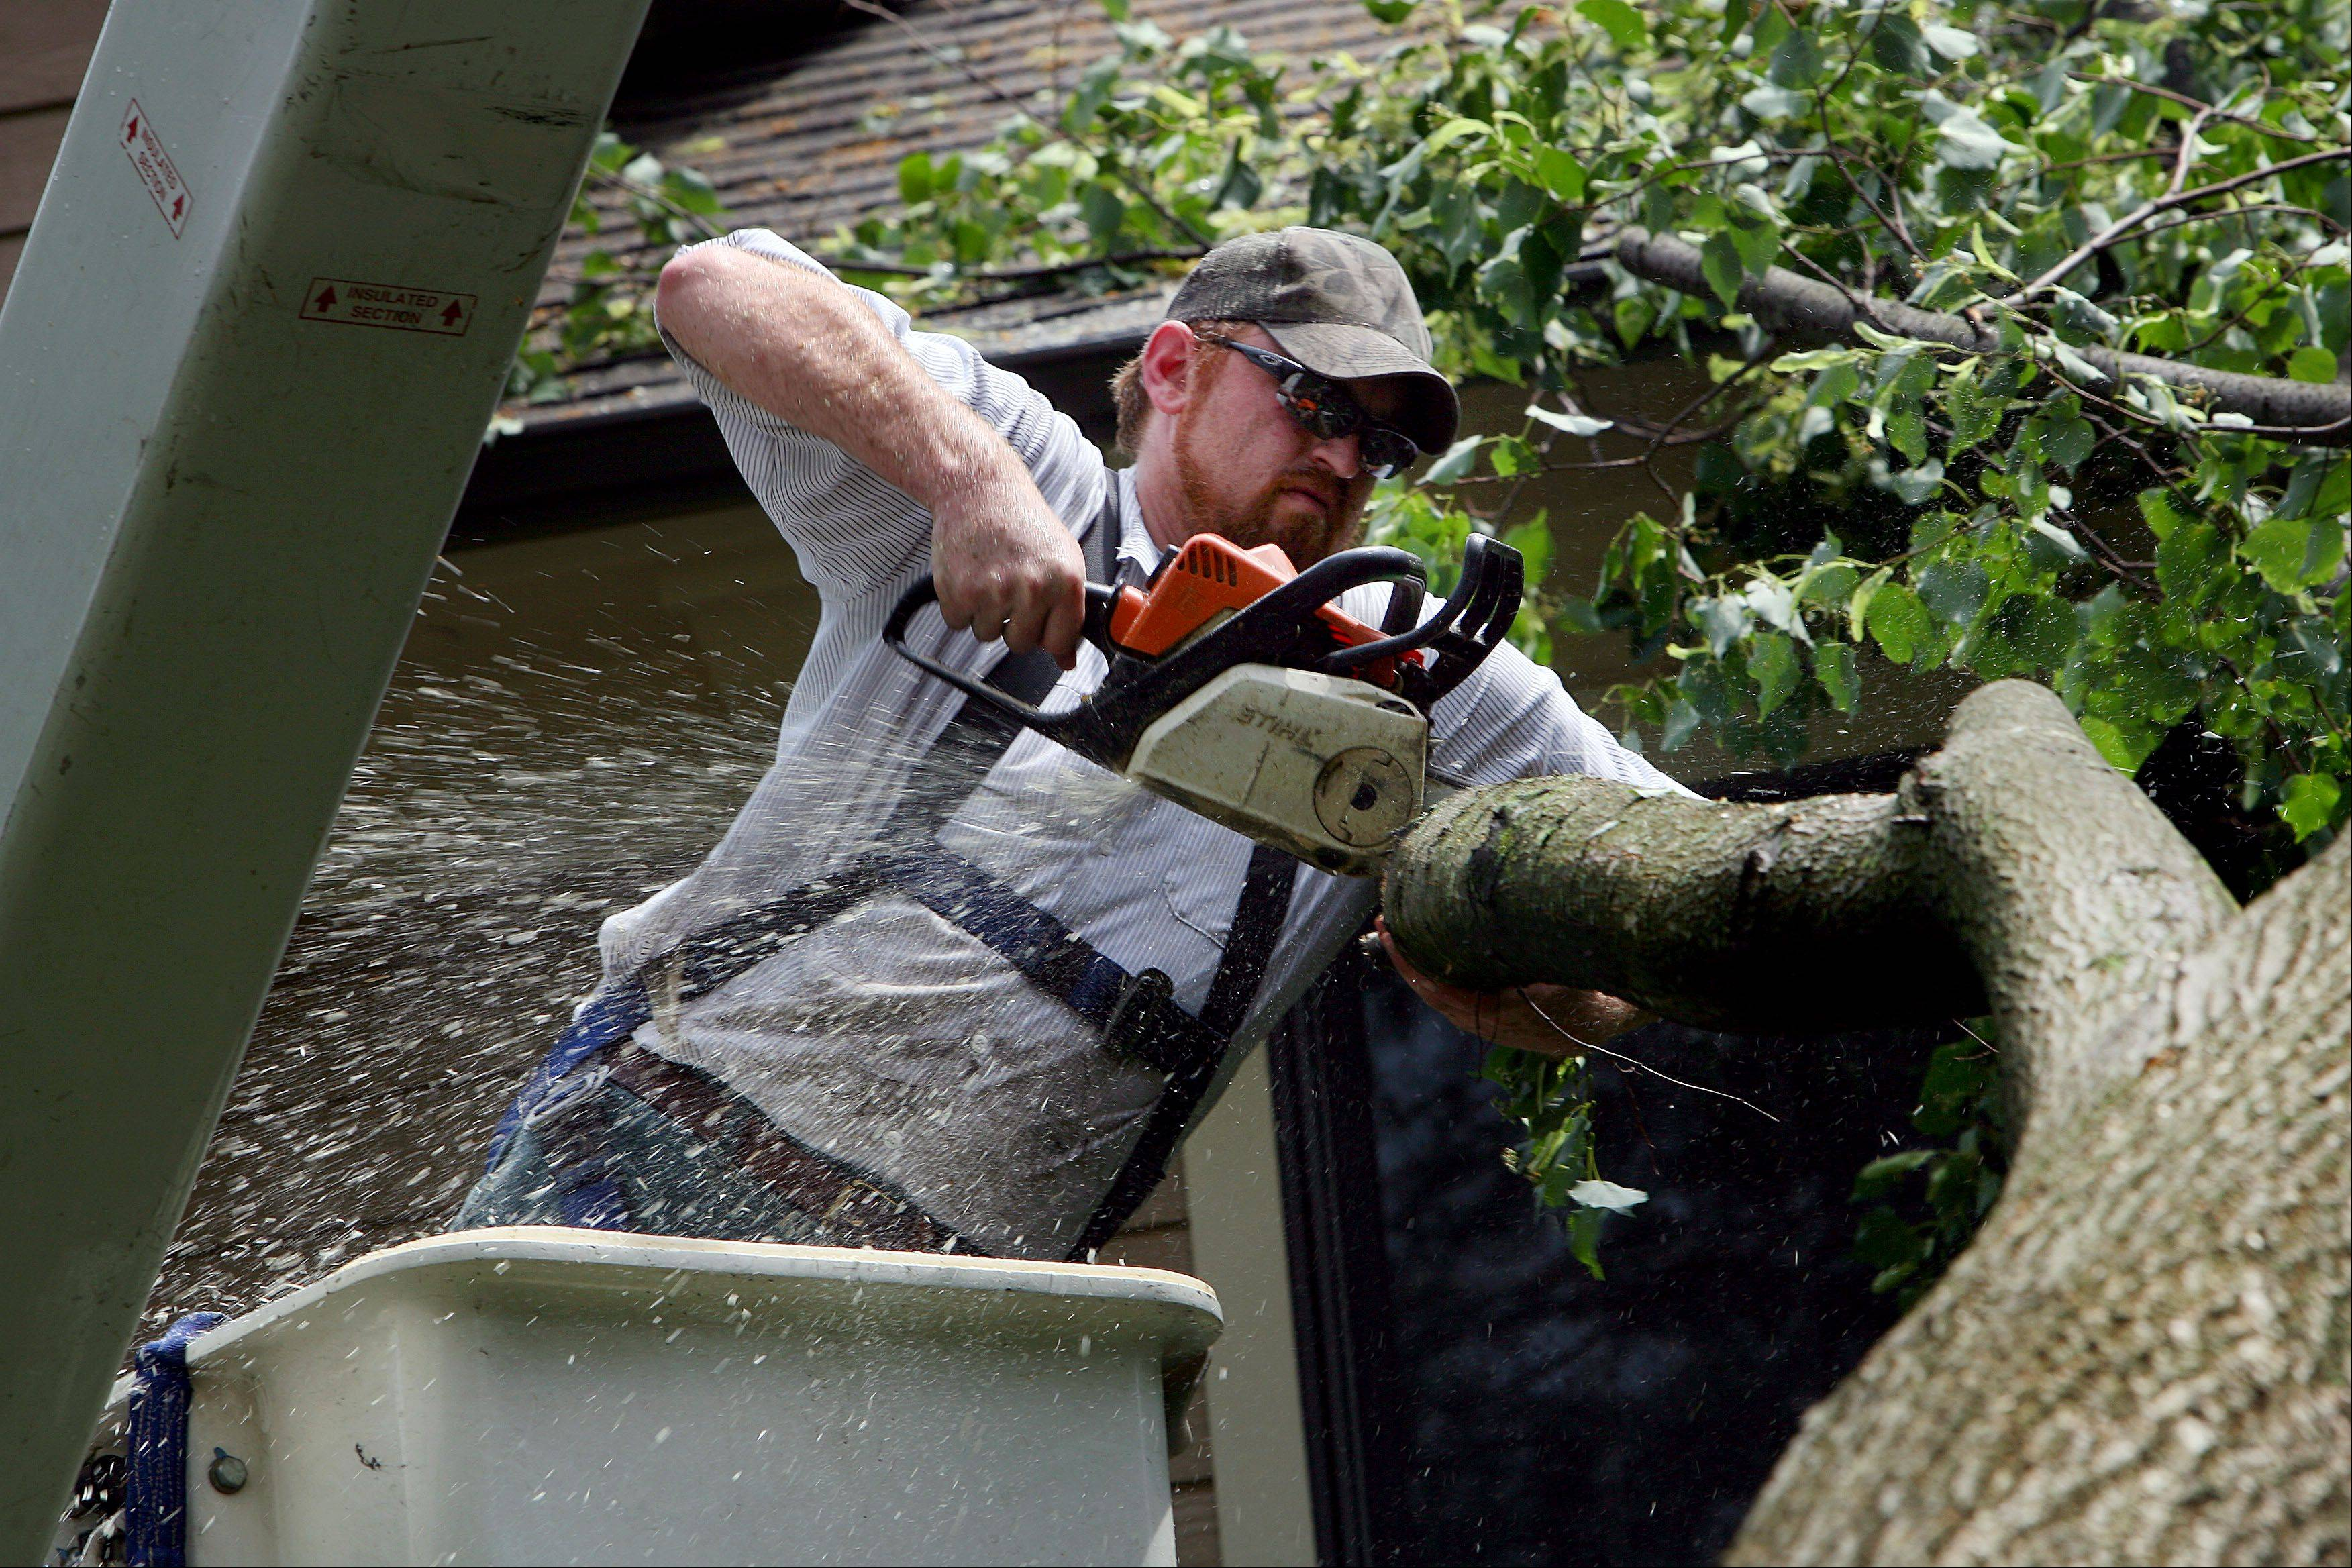 Dave Heurich with Libertyville Public Works tries to remove tree limbs that fell into a house on the 200 block of Second Street in Libertyville Monday morning after a dangerous thunderstorm blew through the area.